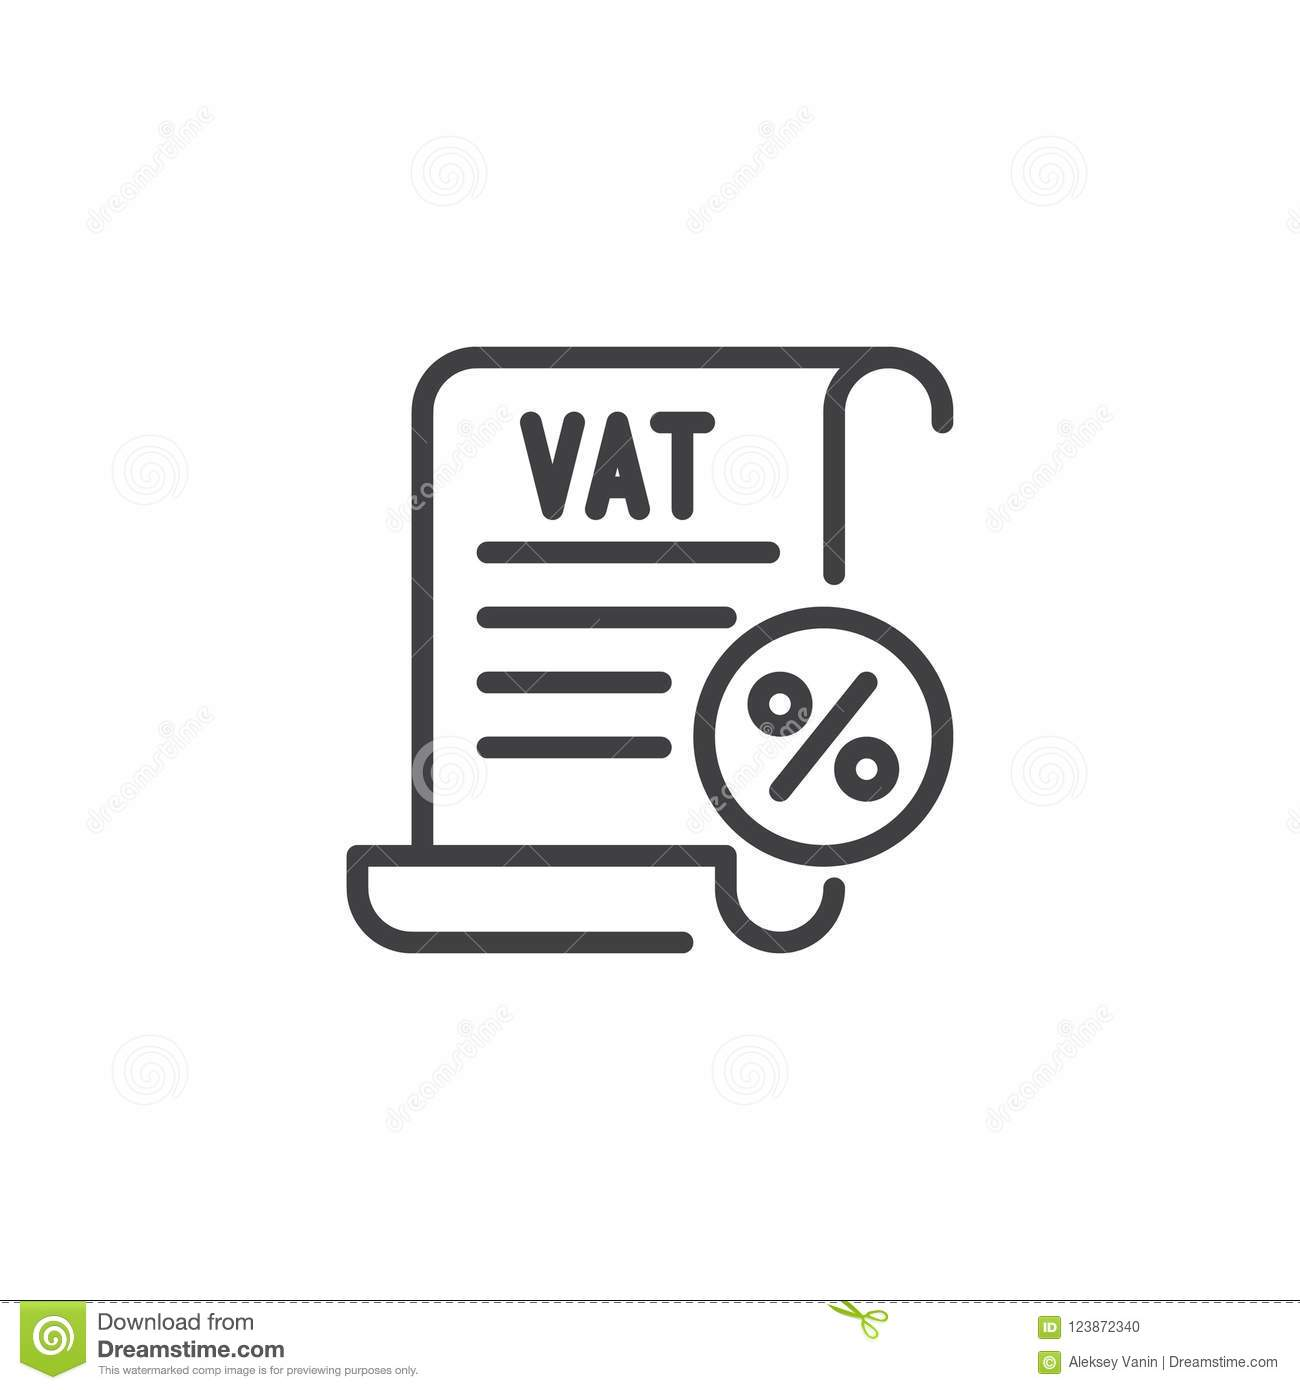 Vat Taxes Outline Icon Stock Vector Illustration Of